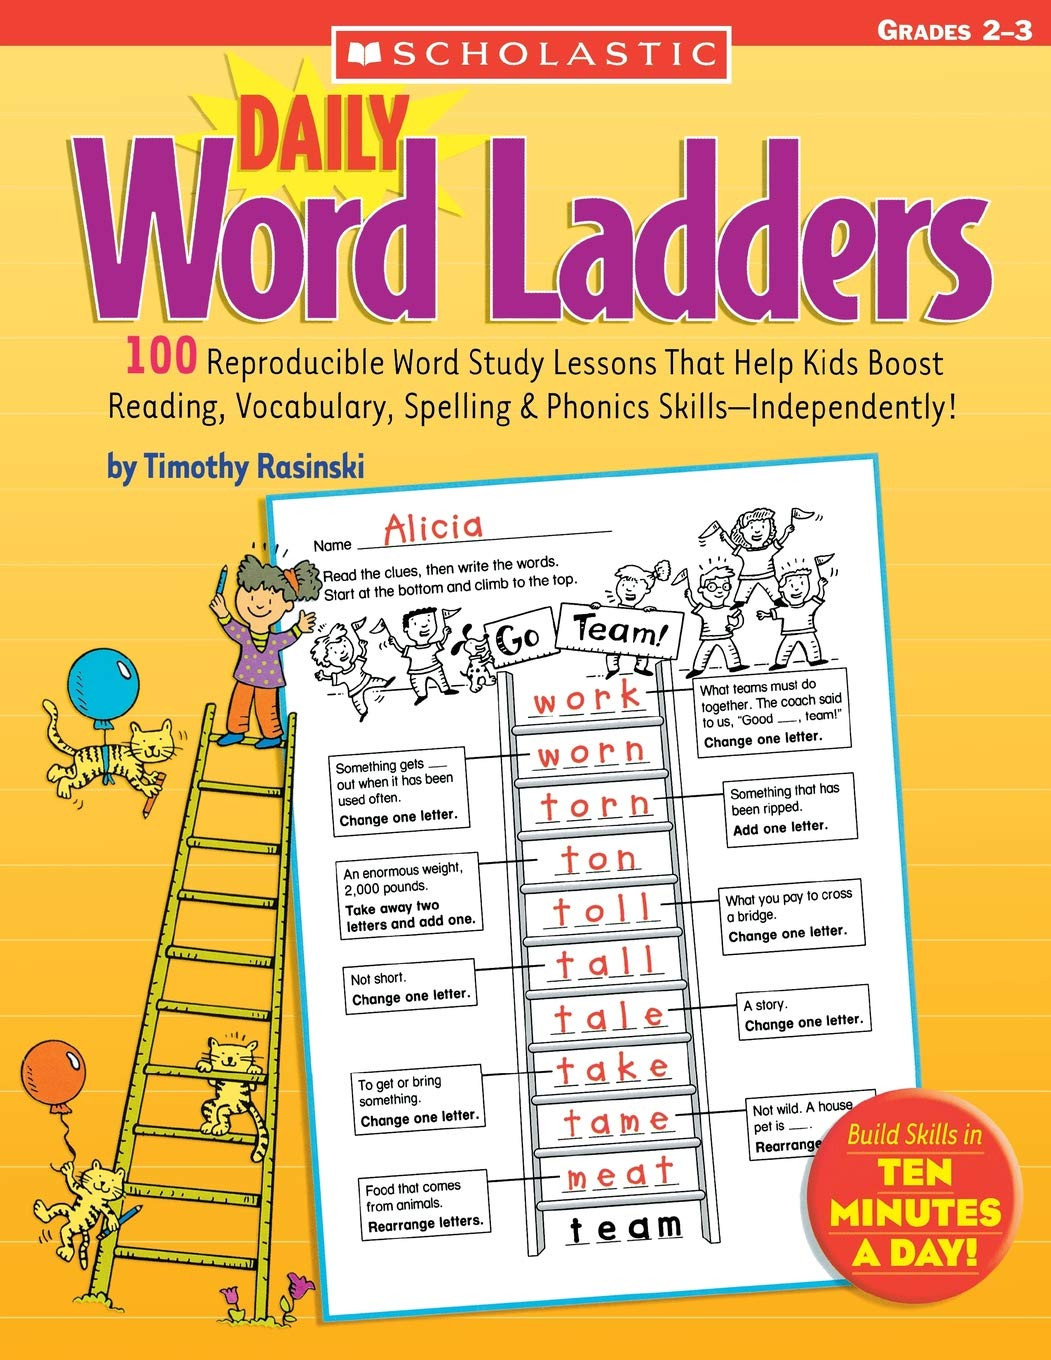 Word Ladders Middle School Daily Word Ladders Grades 2 3 Amazon Rasinski Timothy